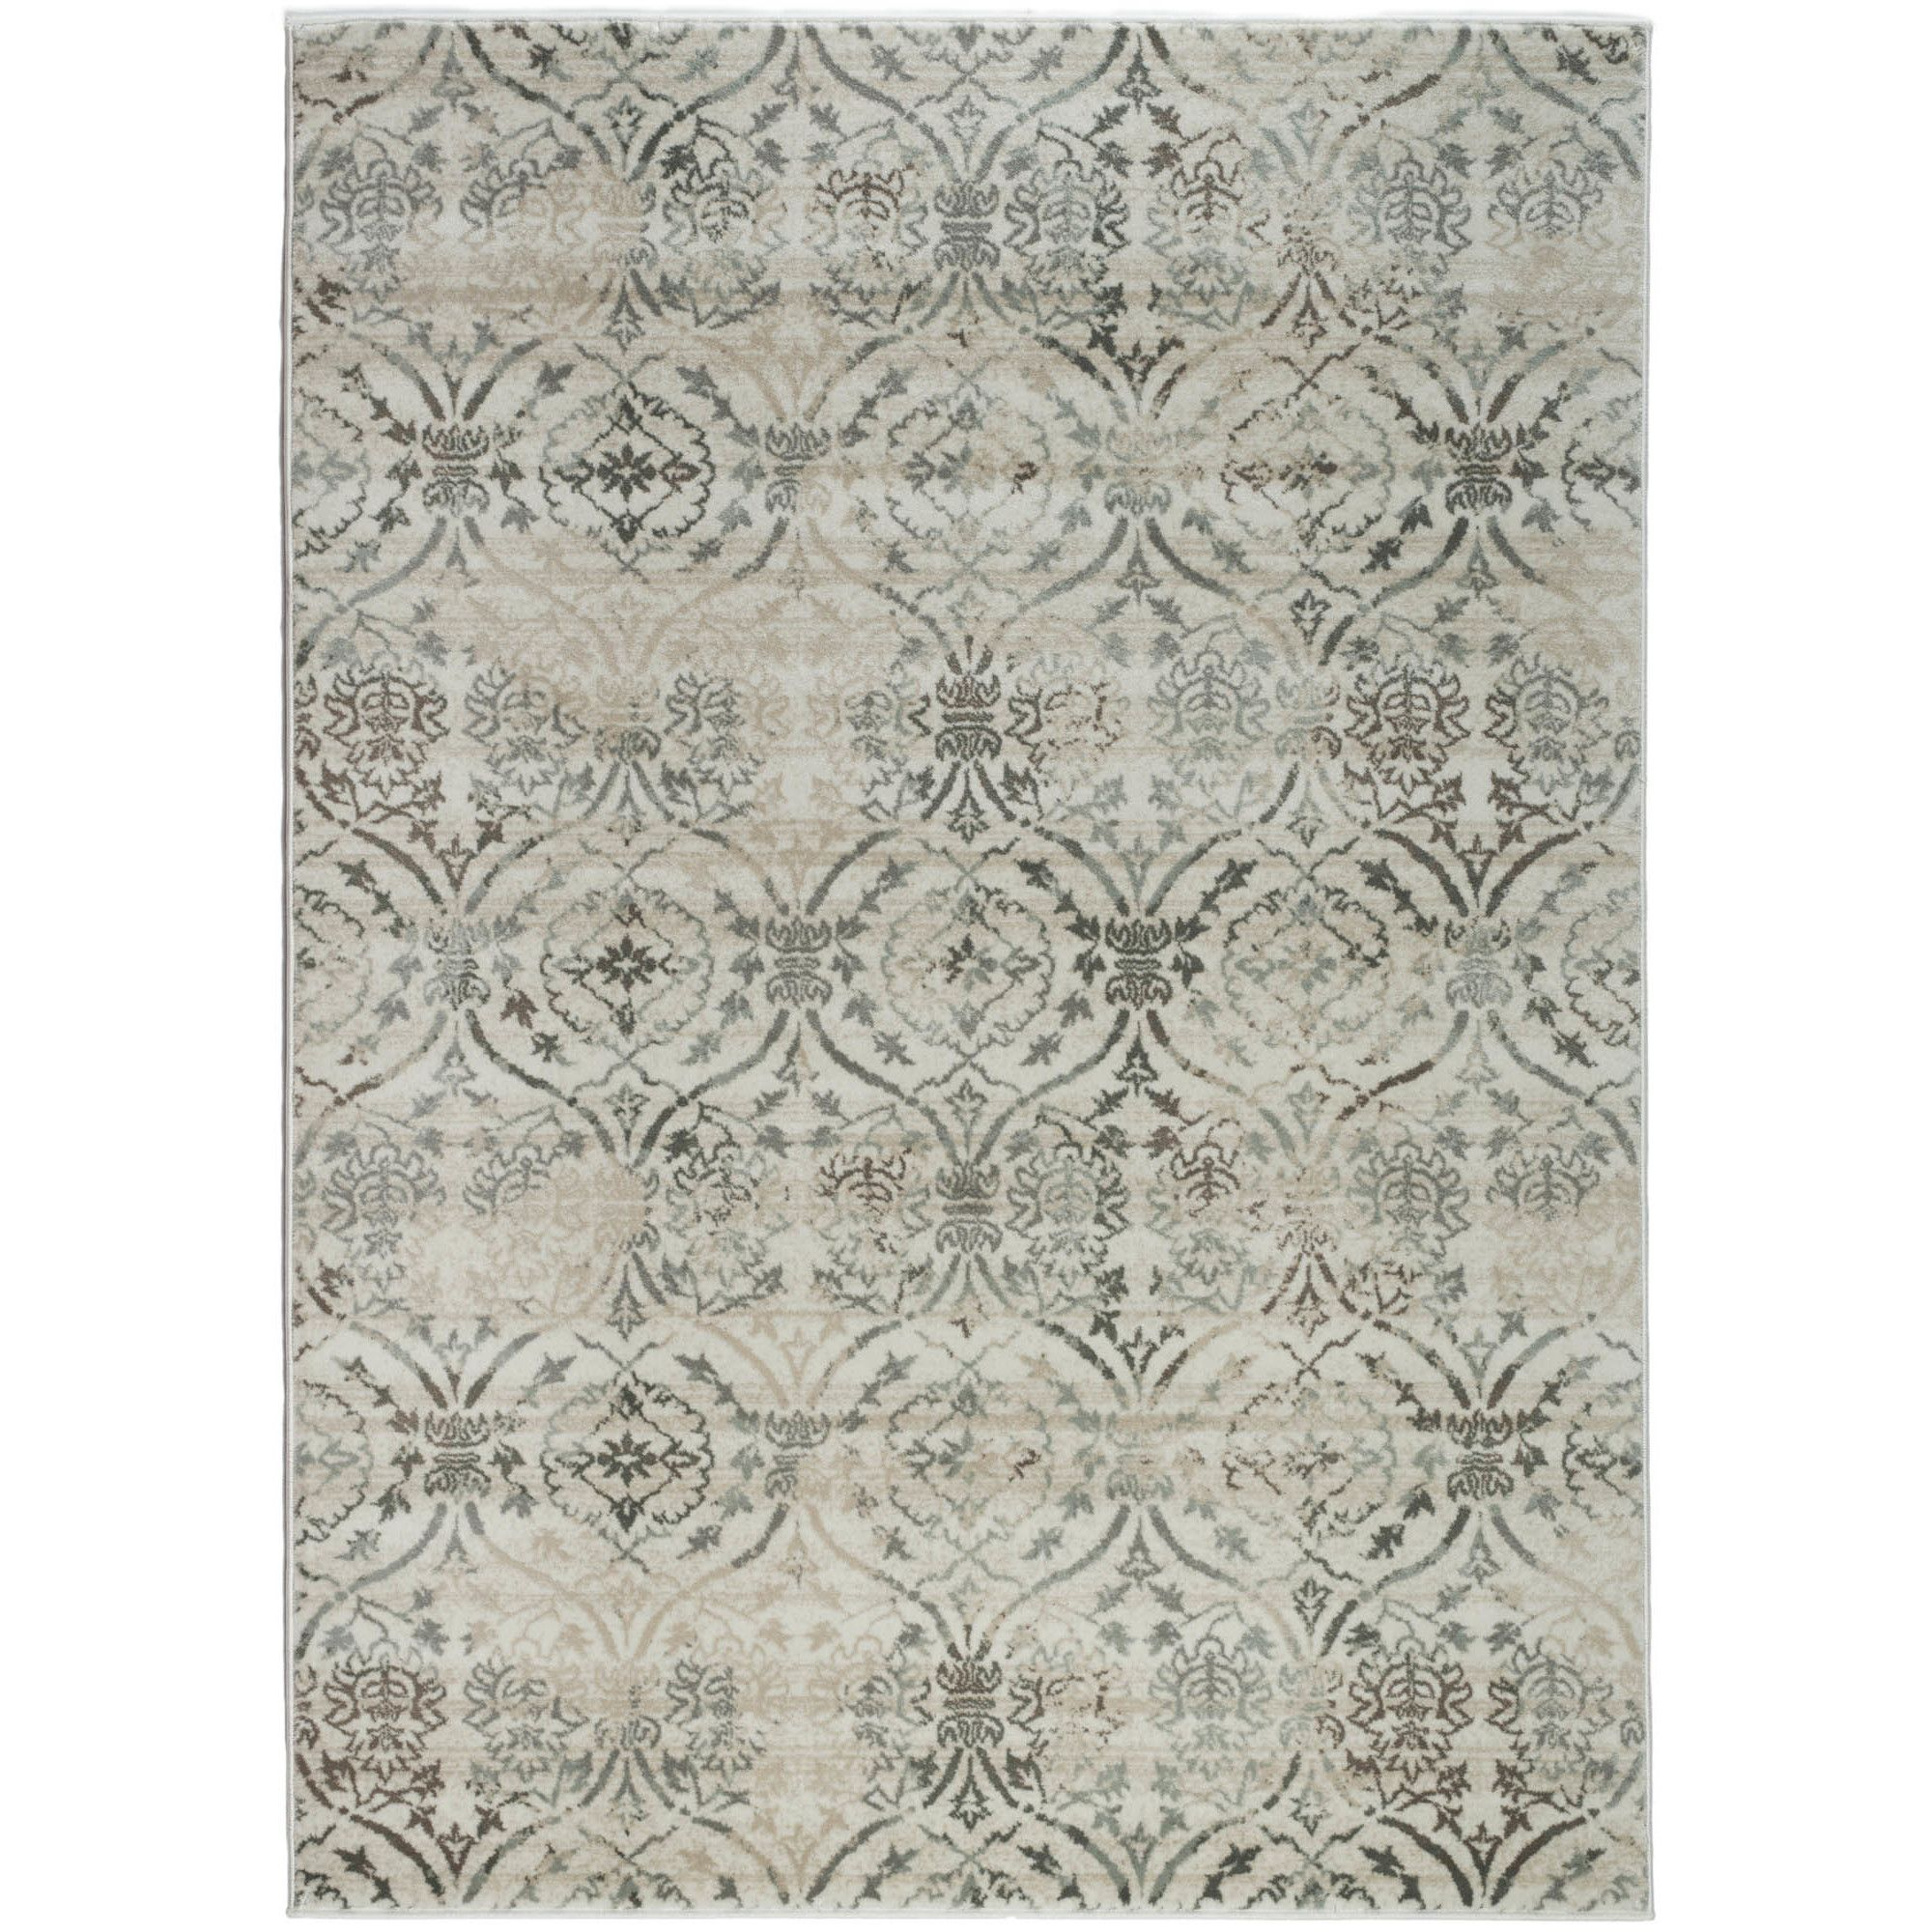 pin rugs it for at ideas gray vintage rug found home area ivory wayfair